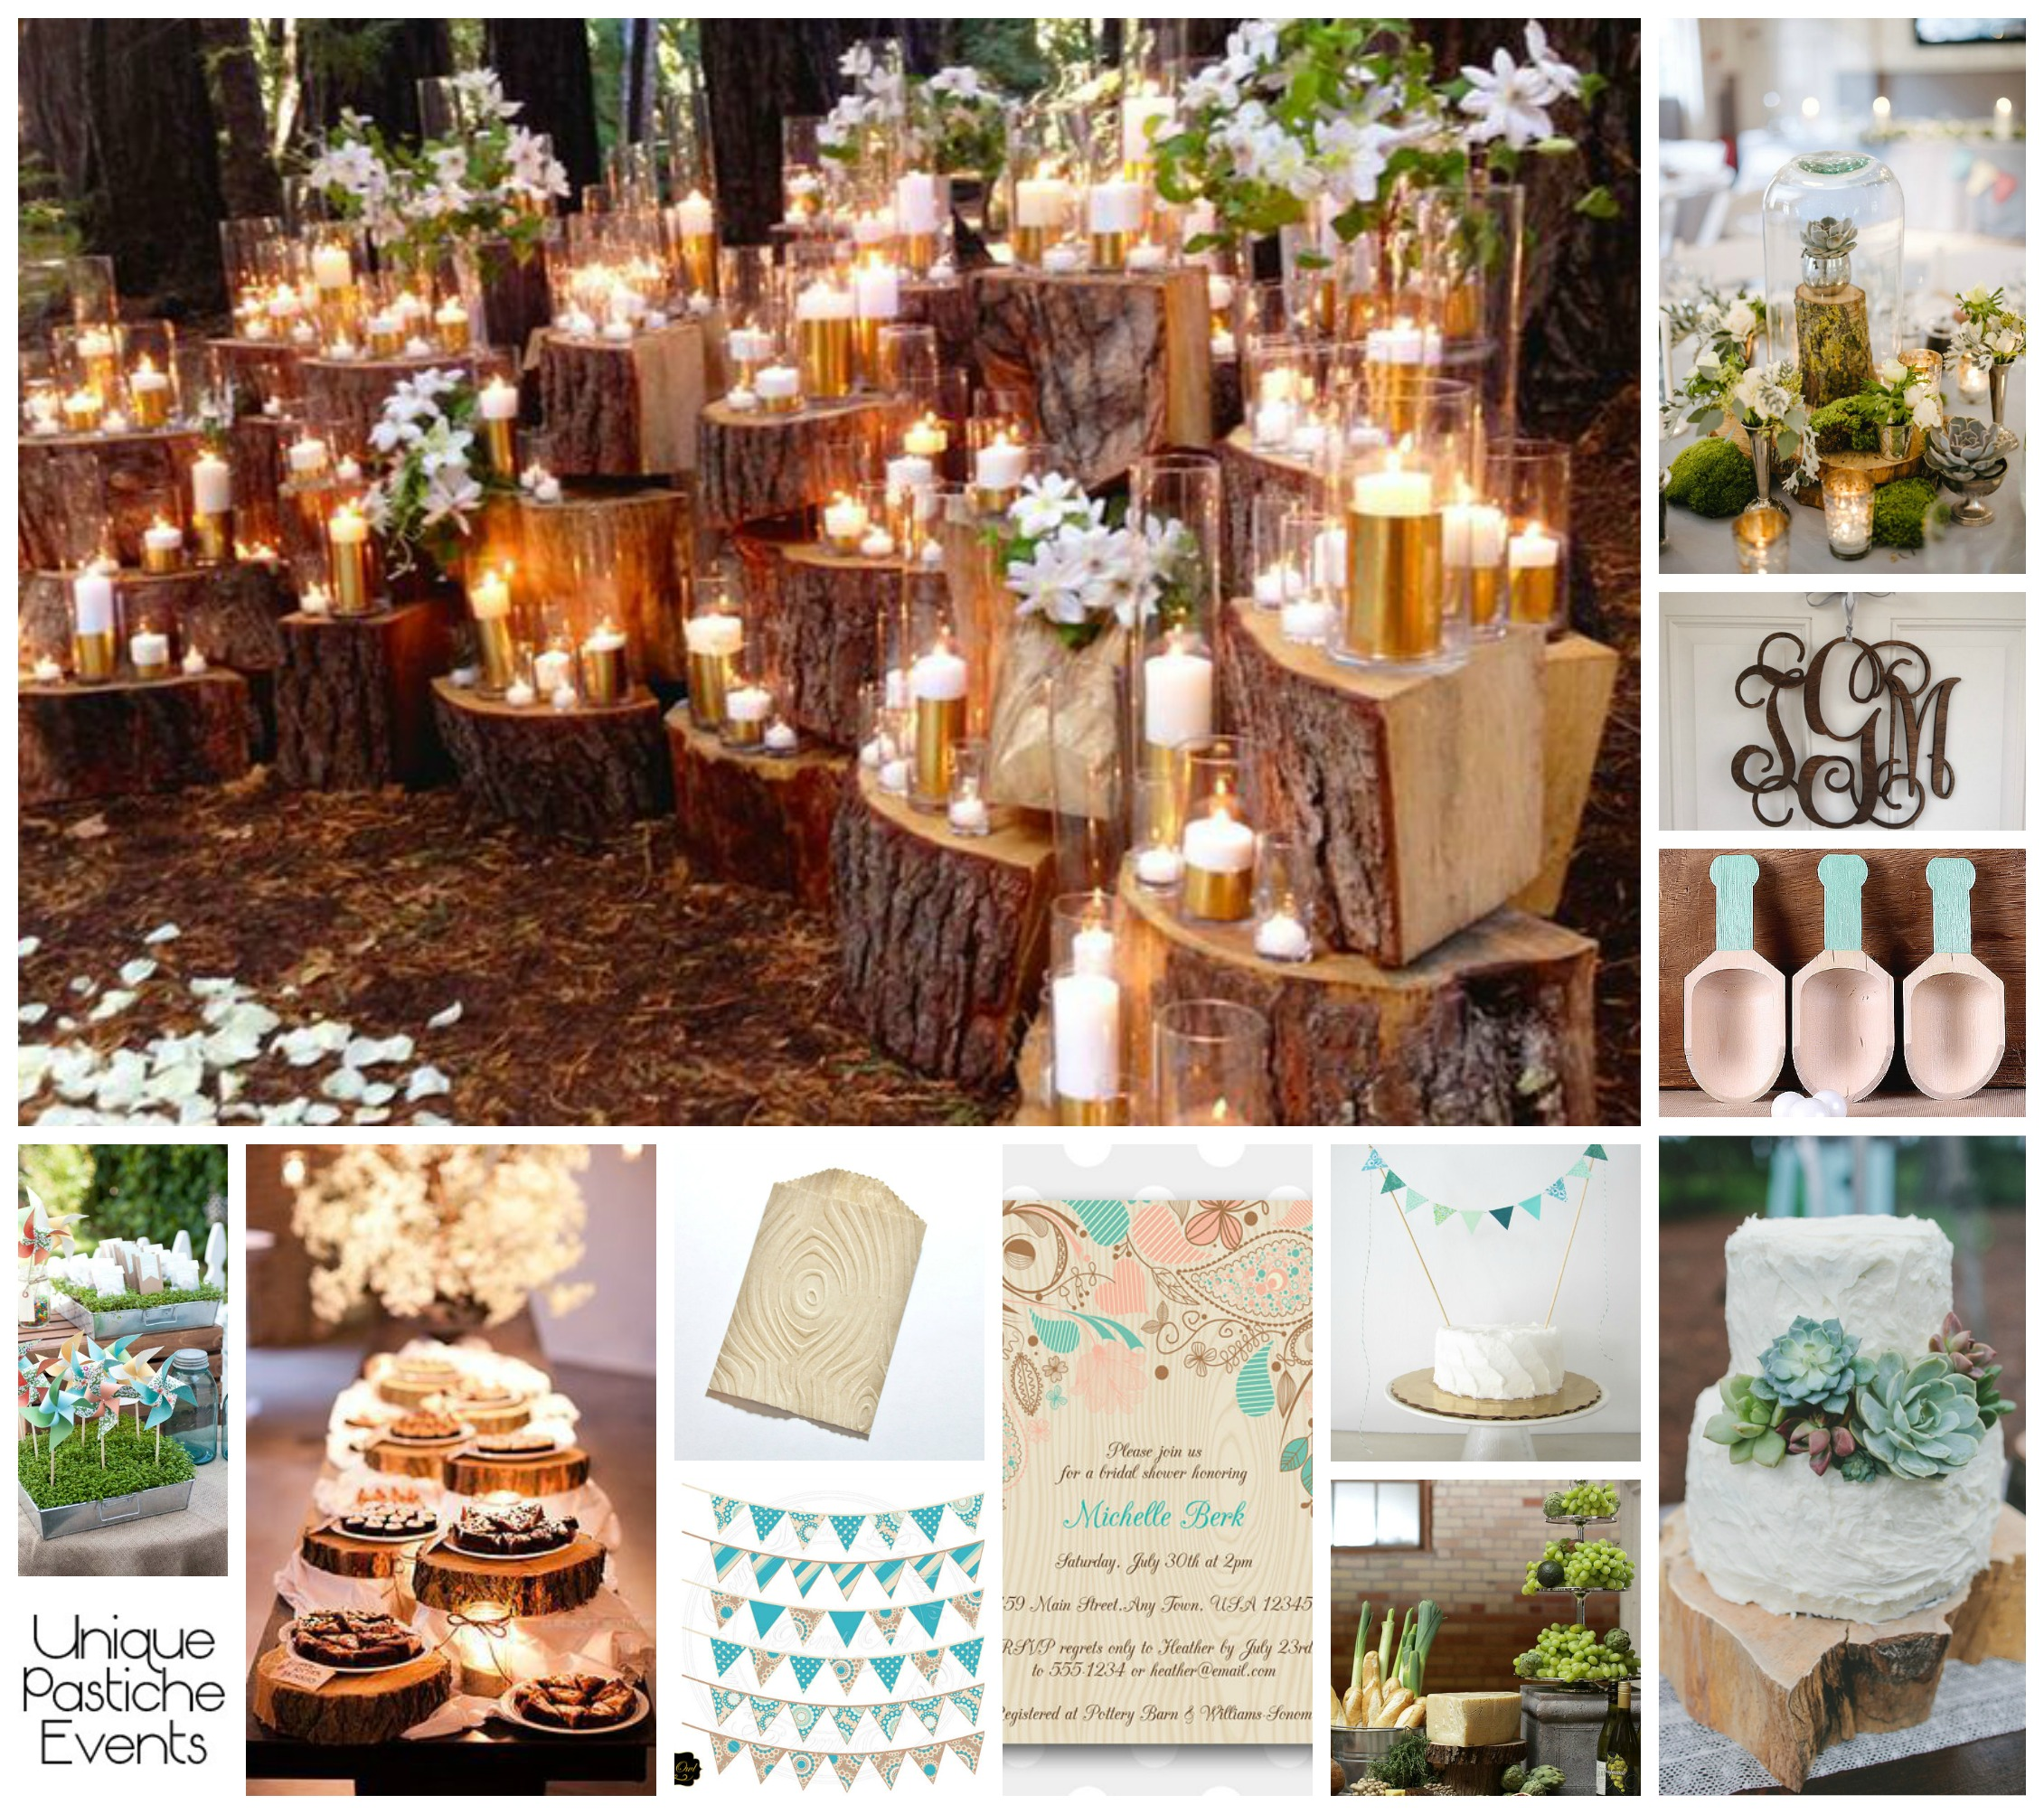 7 Barn Wedding Decoration Ideas For A Spring Wedding: Wood Grain Spring Wedding Ideas